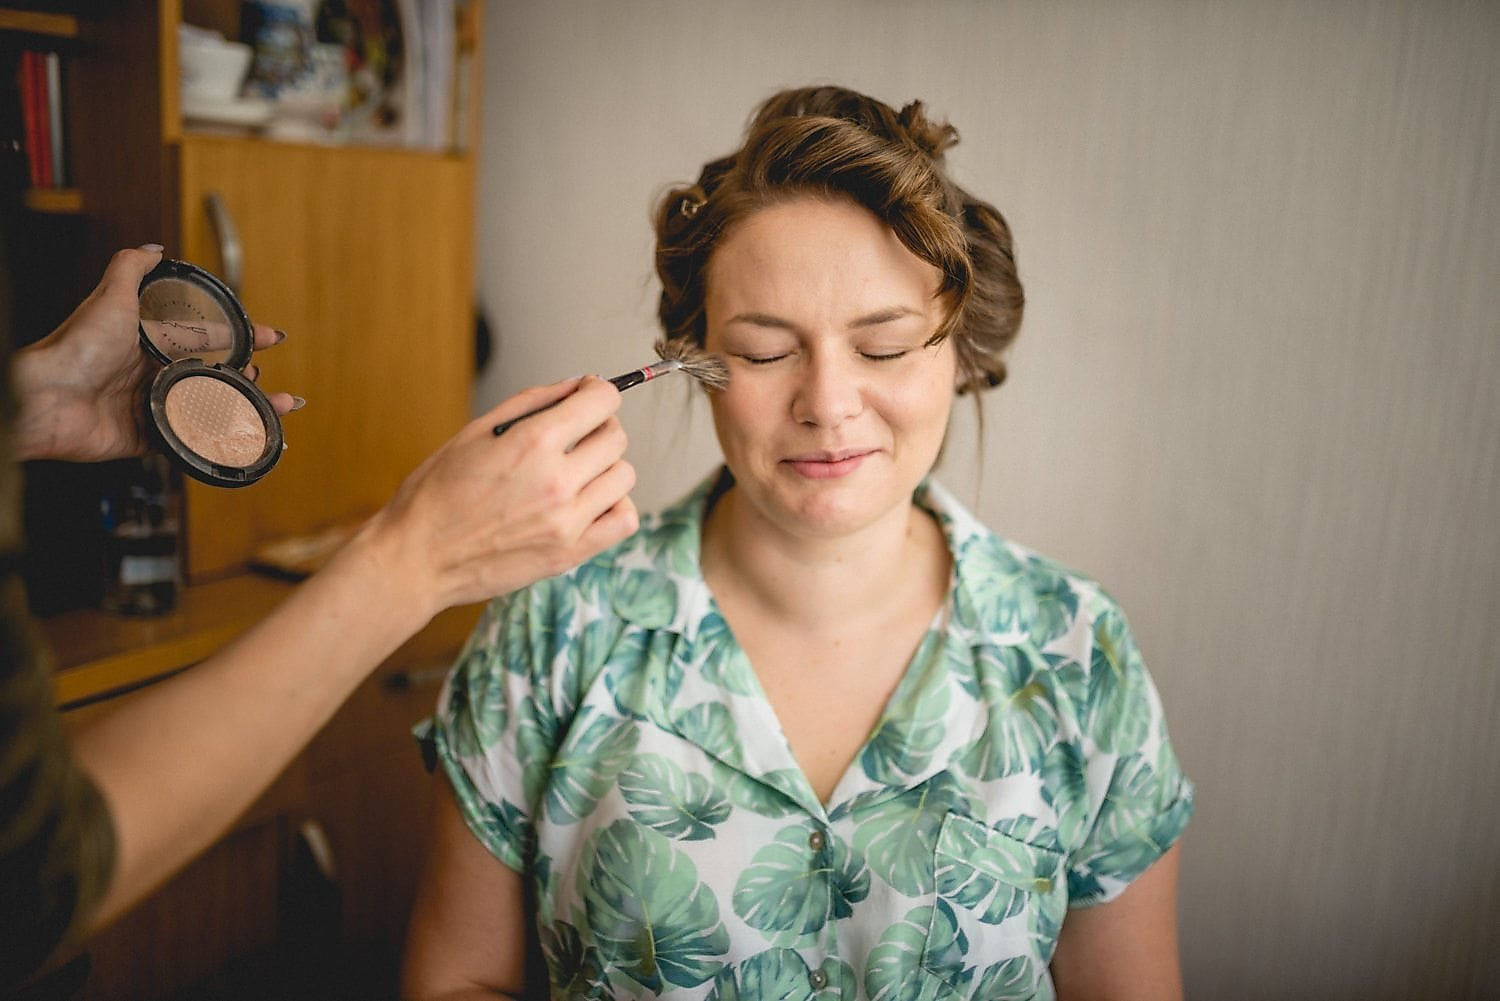 Bride gets her makeup done on her wedding day